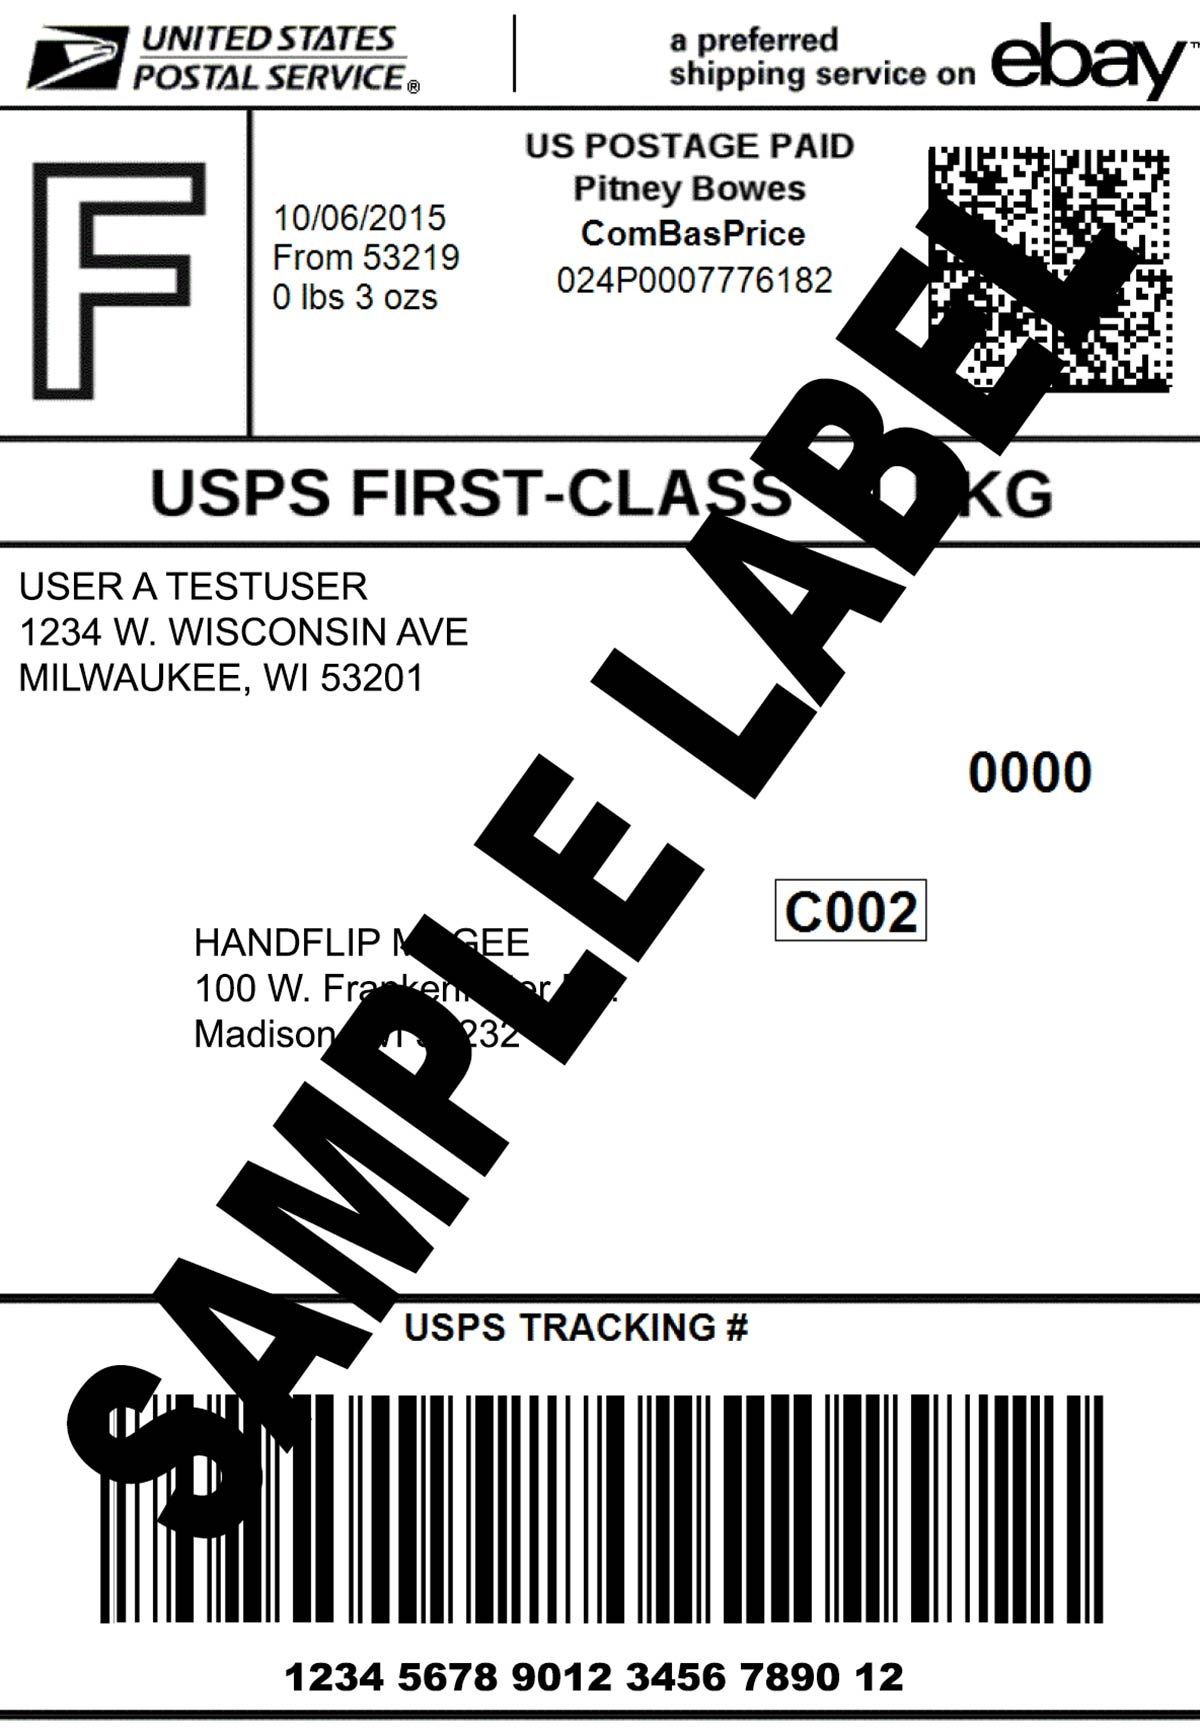 Thermal Printer Test - Good Shipping Label